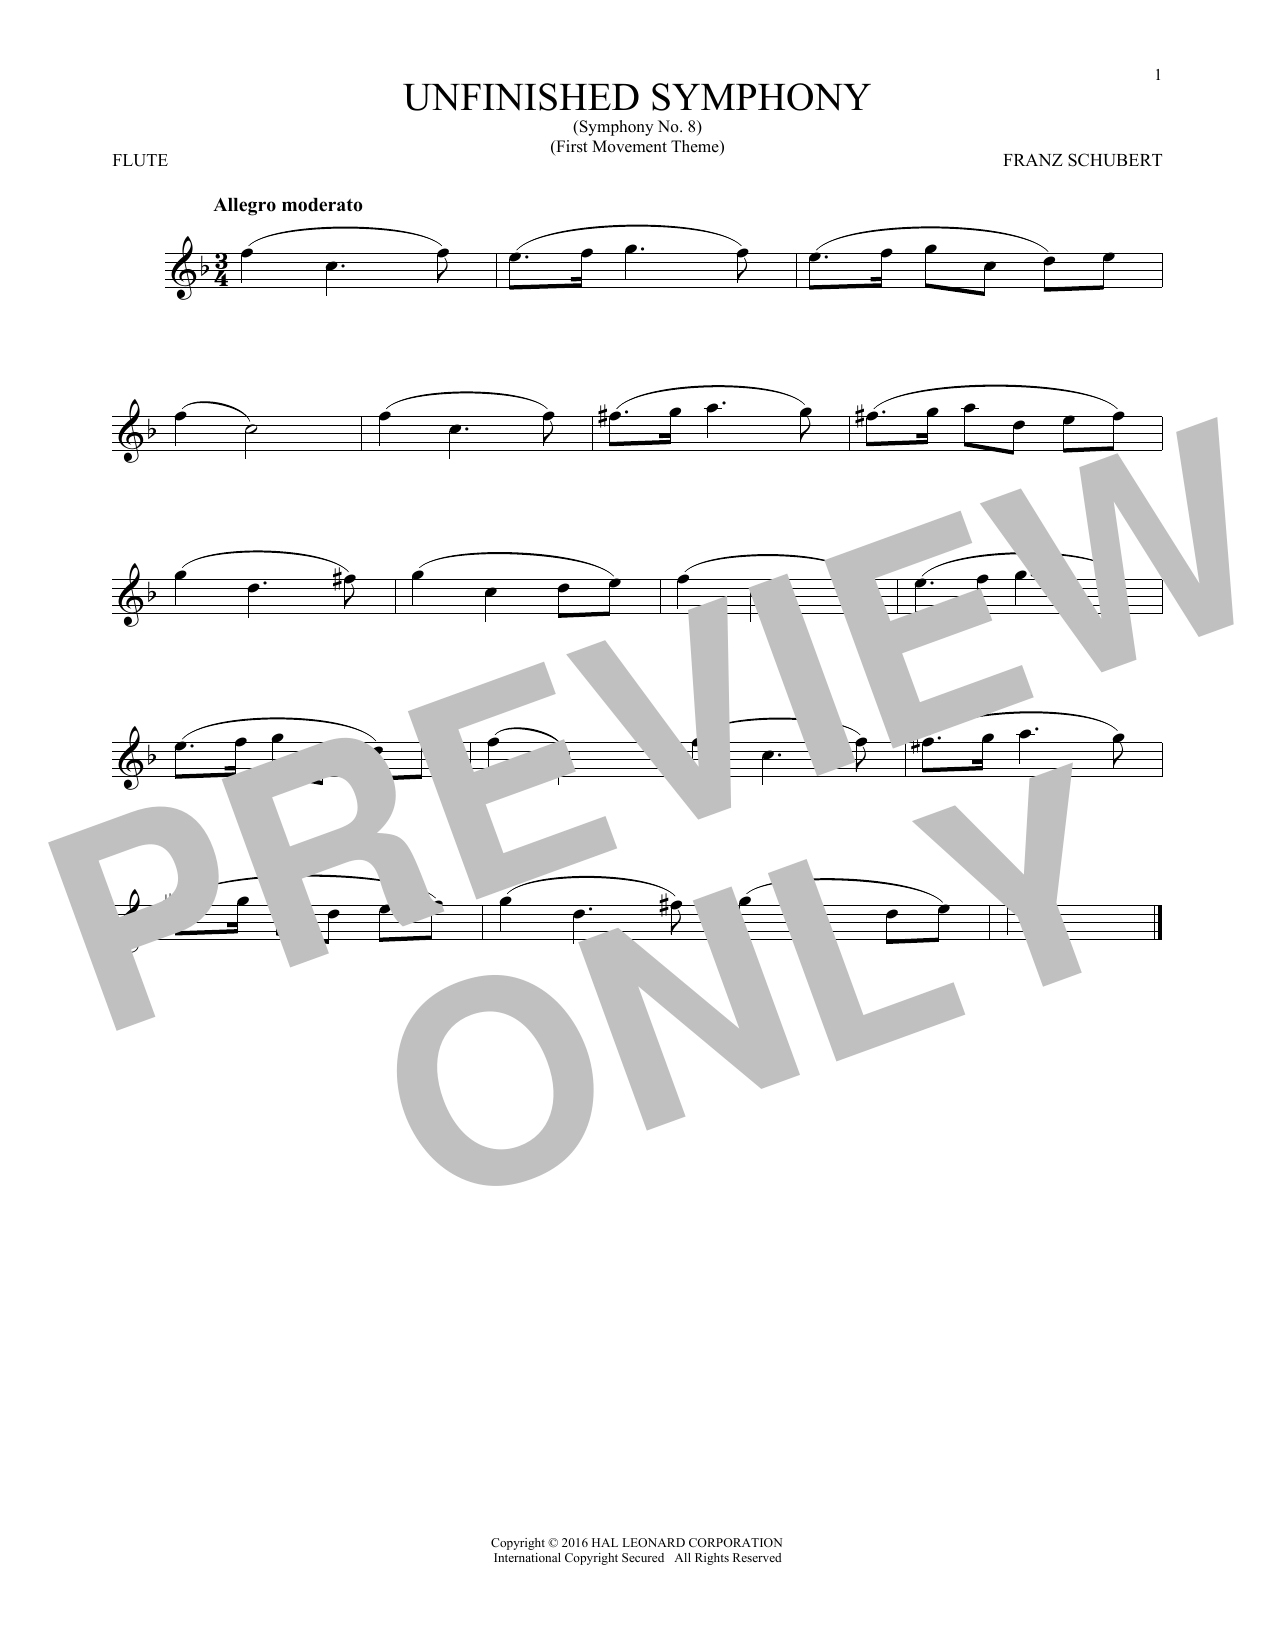 The Unfinished Symphony (Theme) (Flute Solo)